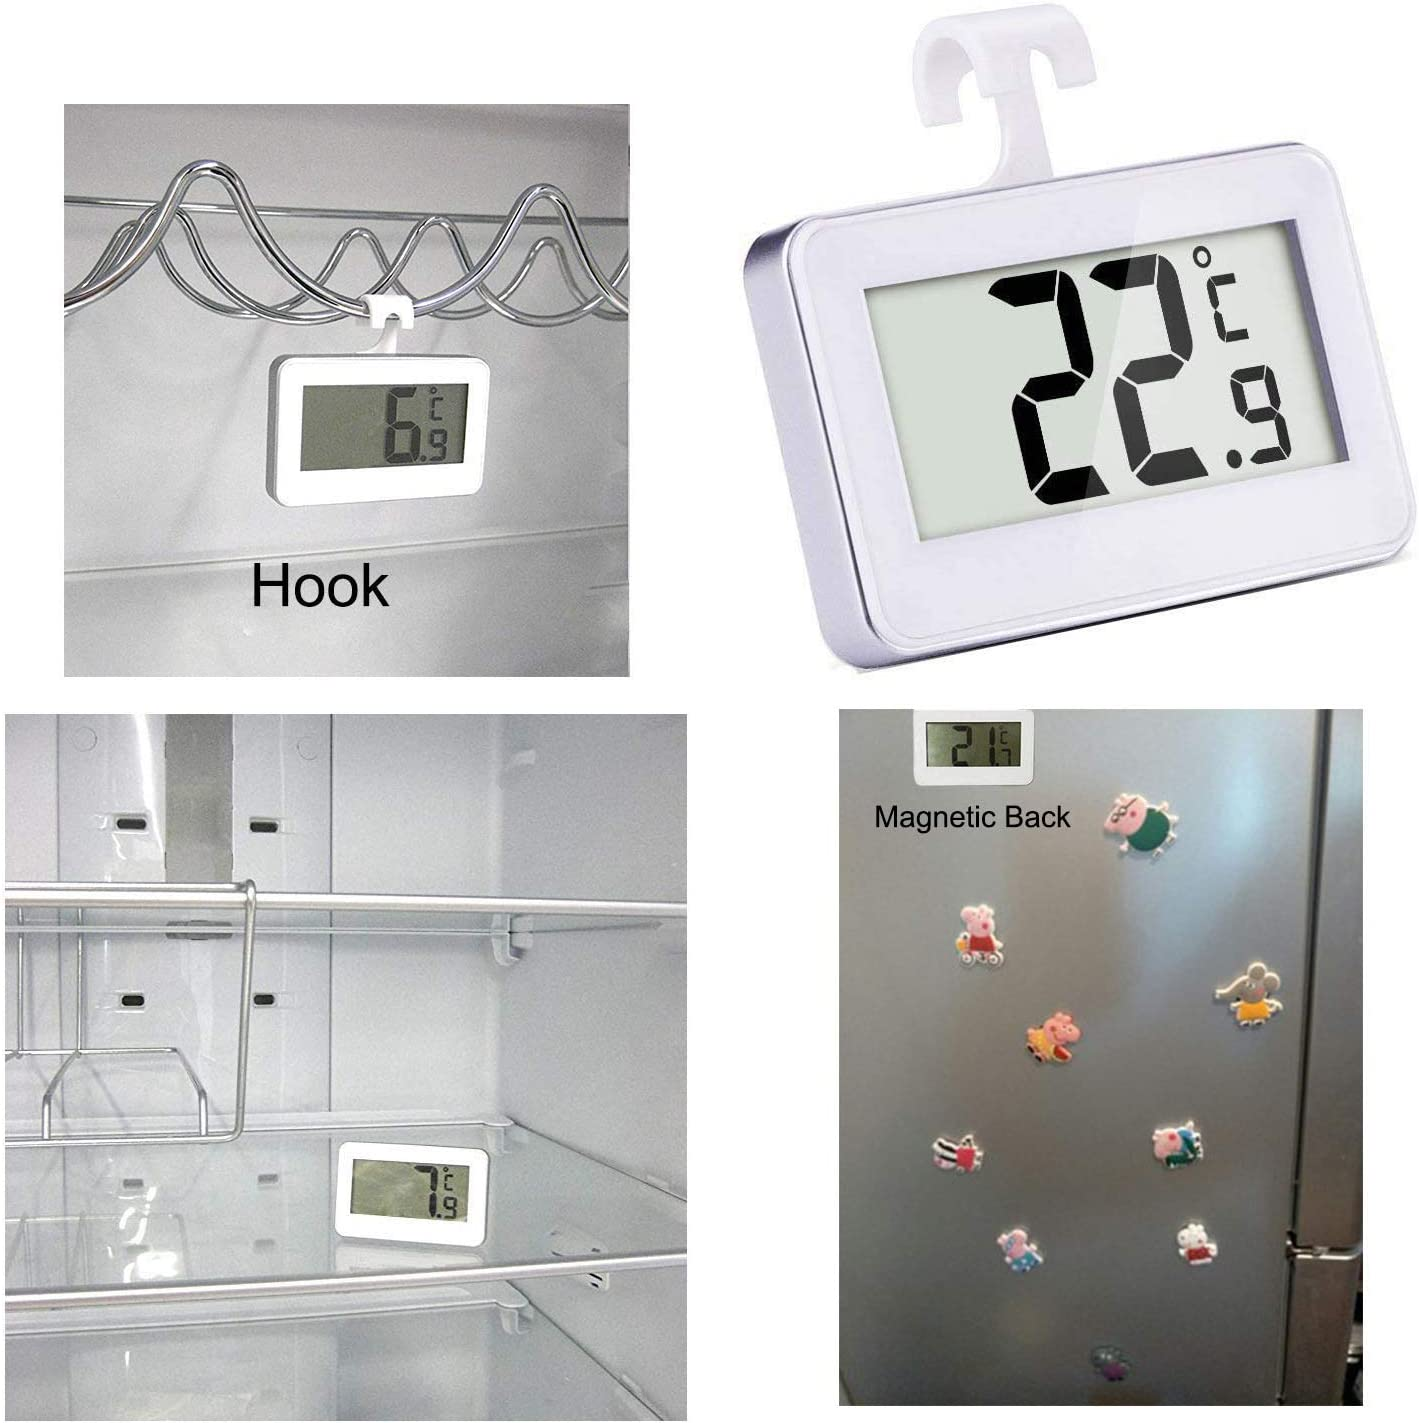 Diameter with Hanging Hook Freezer Refrigerator Cooler Thermometer 2.0 in